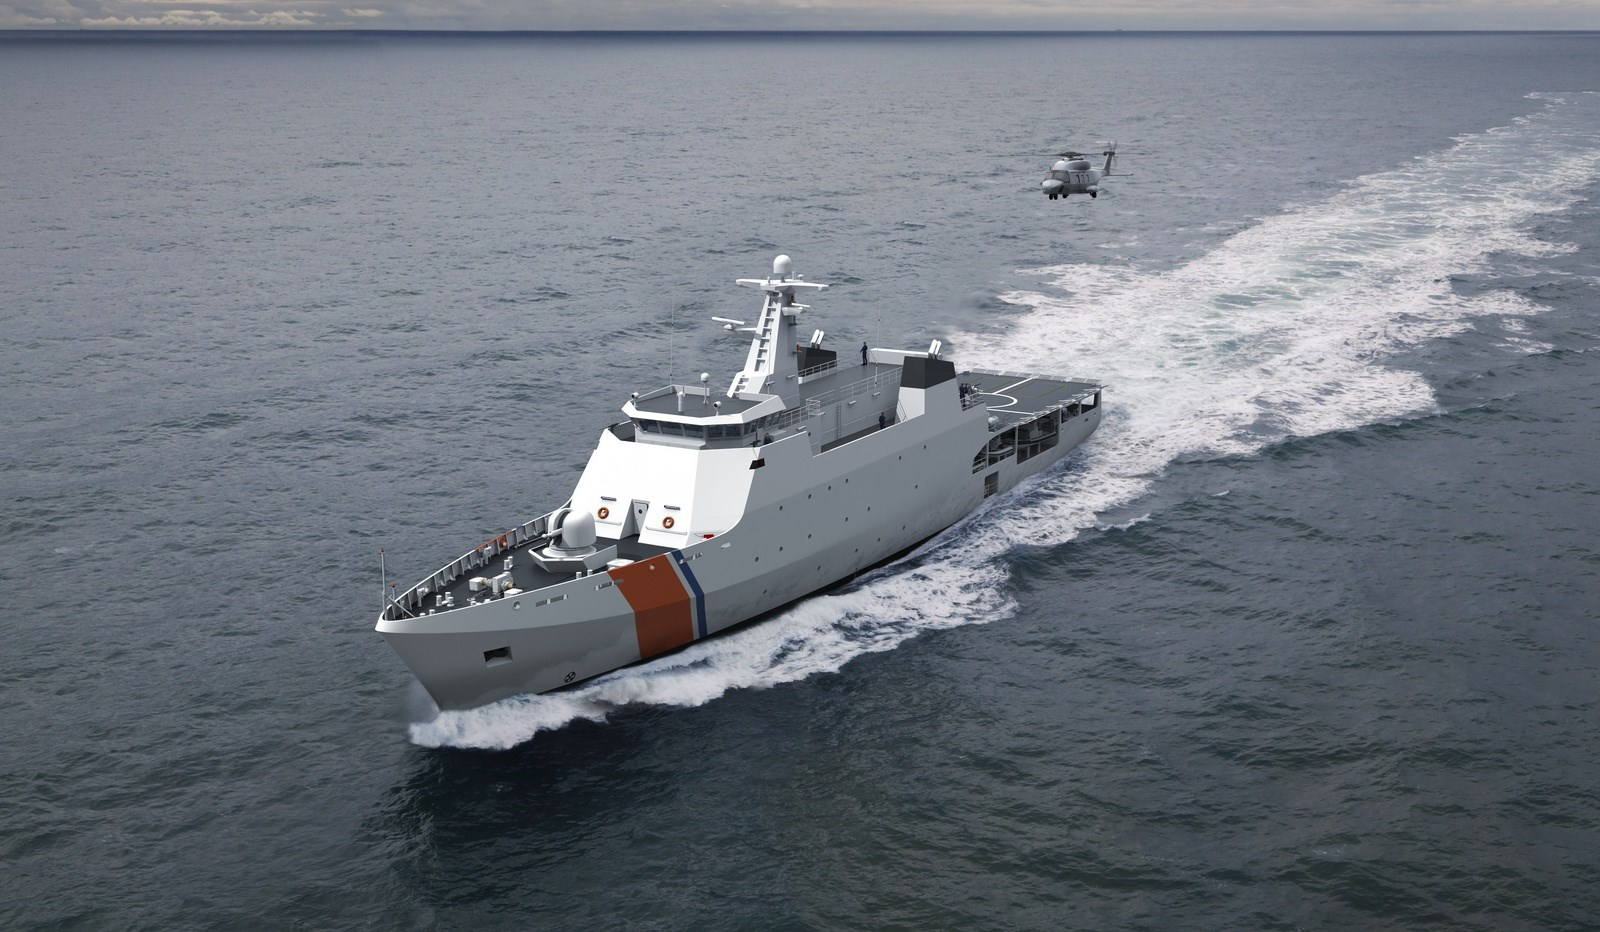 http://products.damen.com/~/media/Products/Images/Clusters%20groups/Naval/Offshore%20Patrol%20Vessel/OPV%202400/Gallery/OPV.ashx